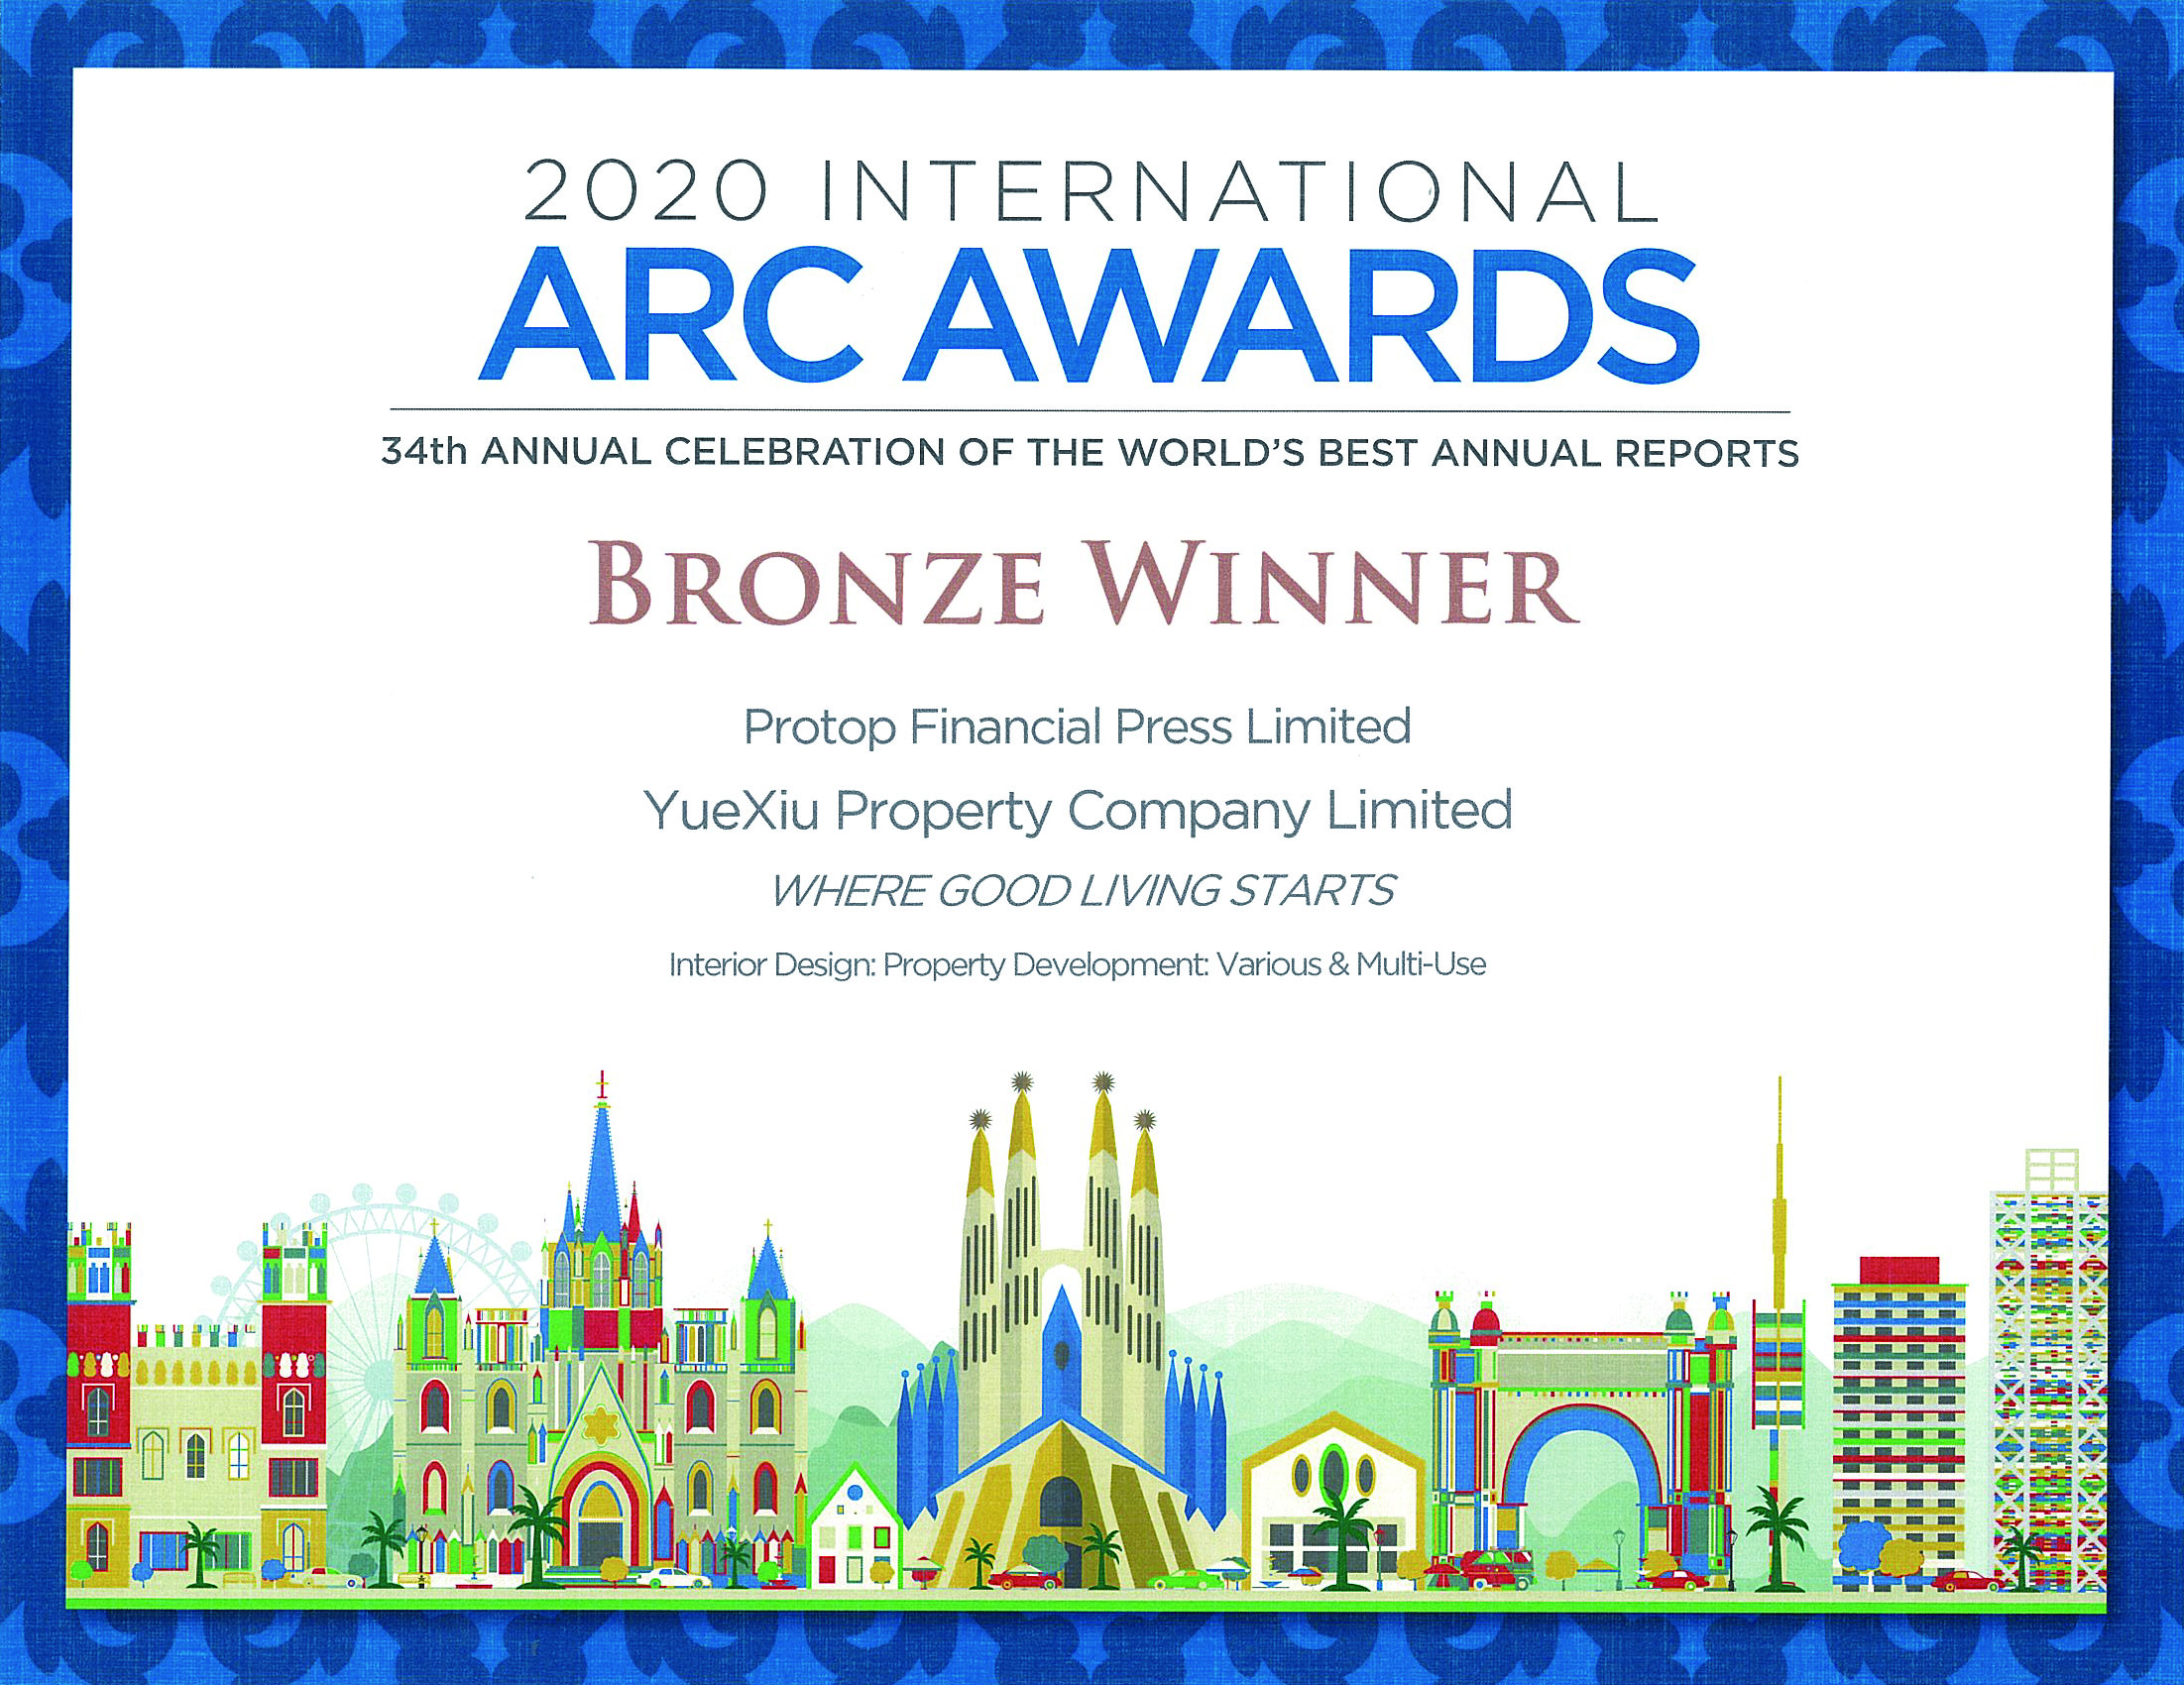 越秀地產股份有限公司 2020 Bronze Award Various & Multi-Use